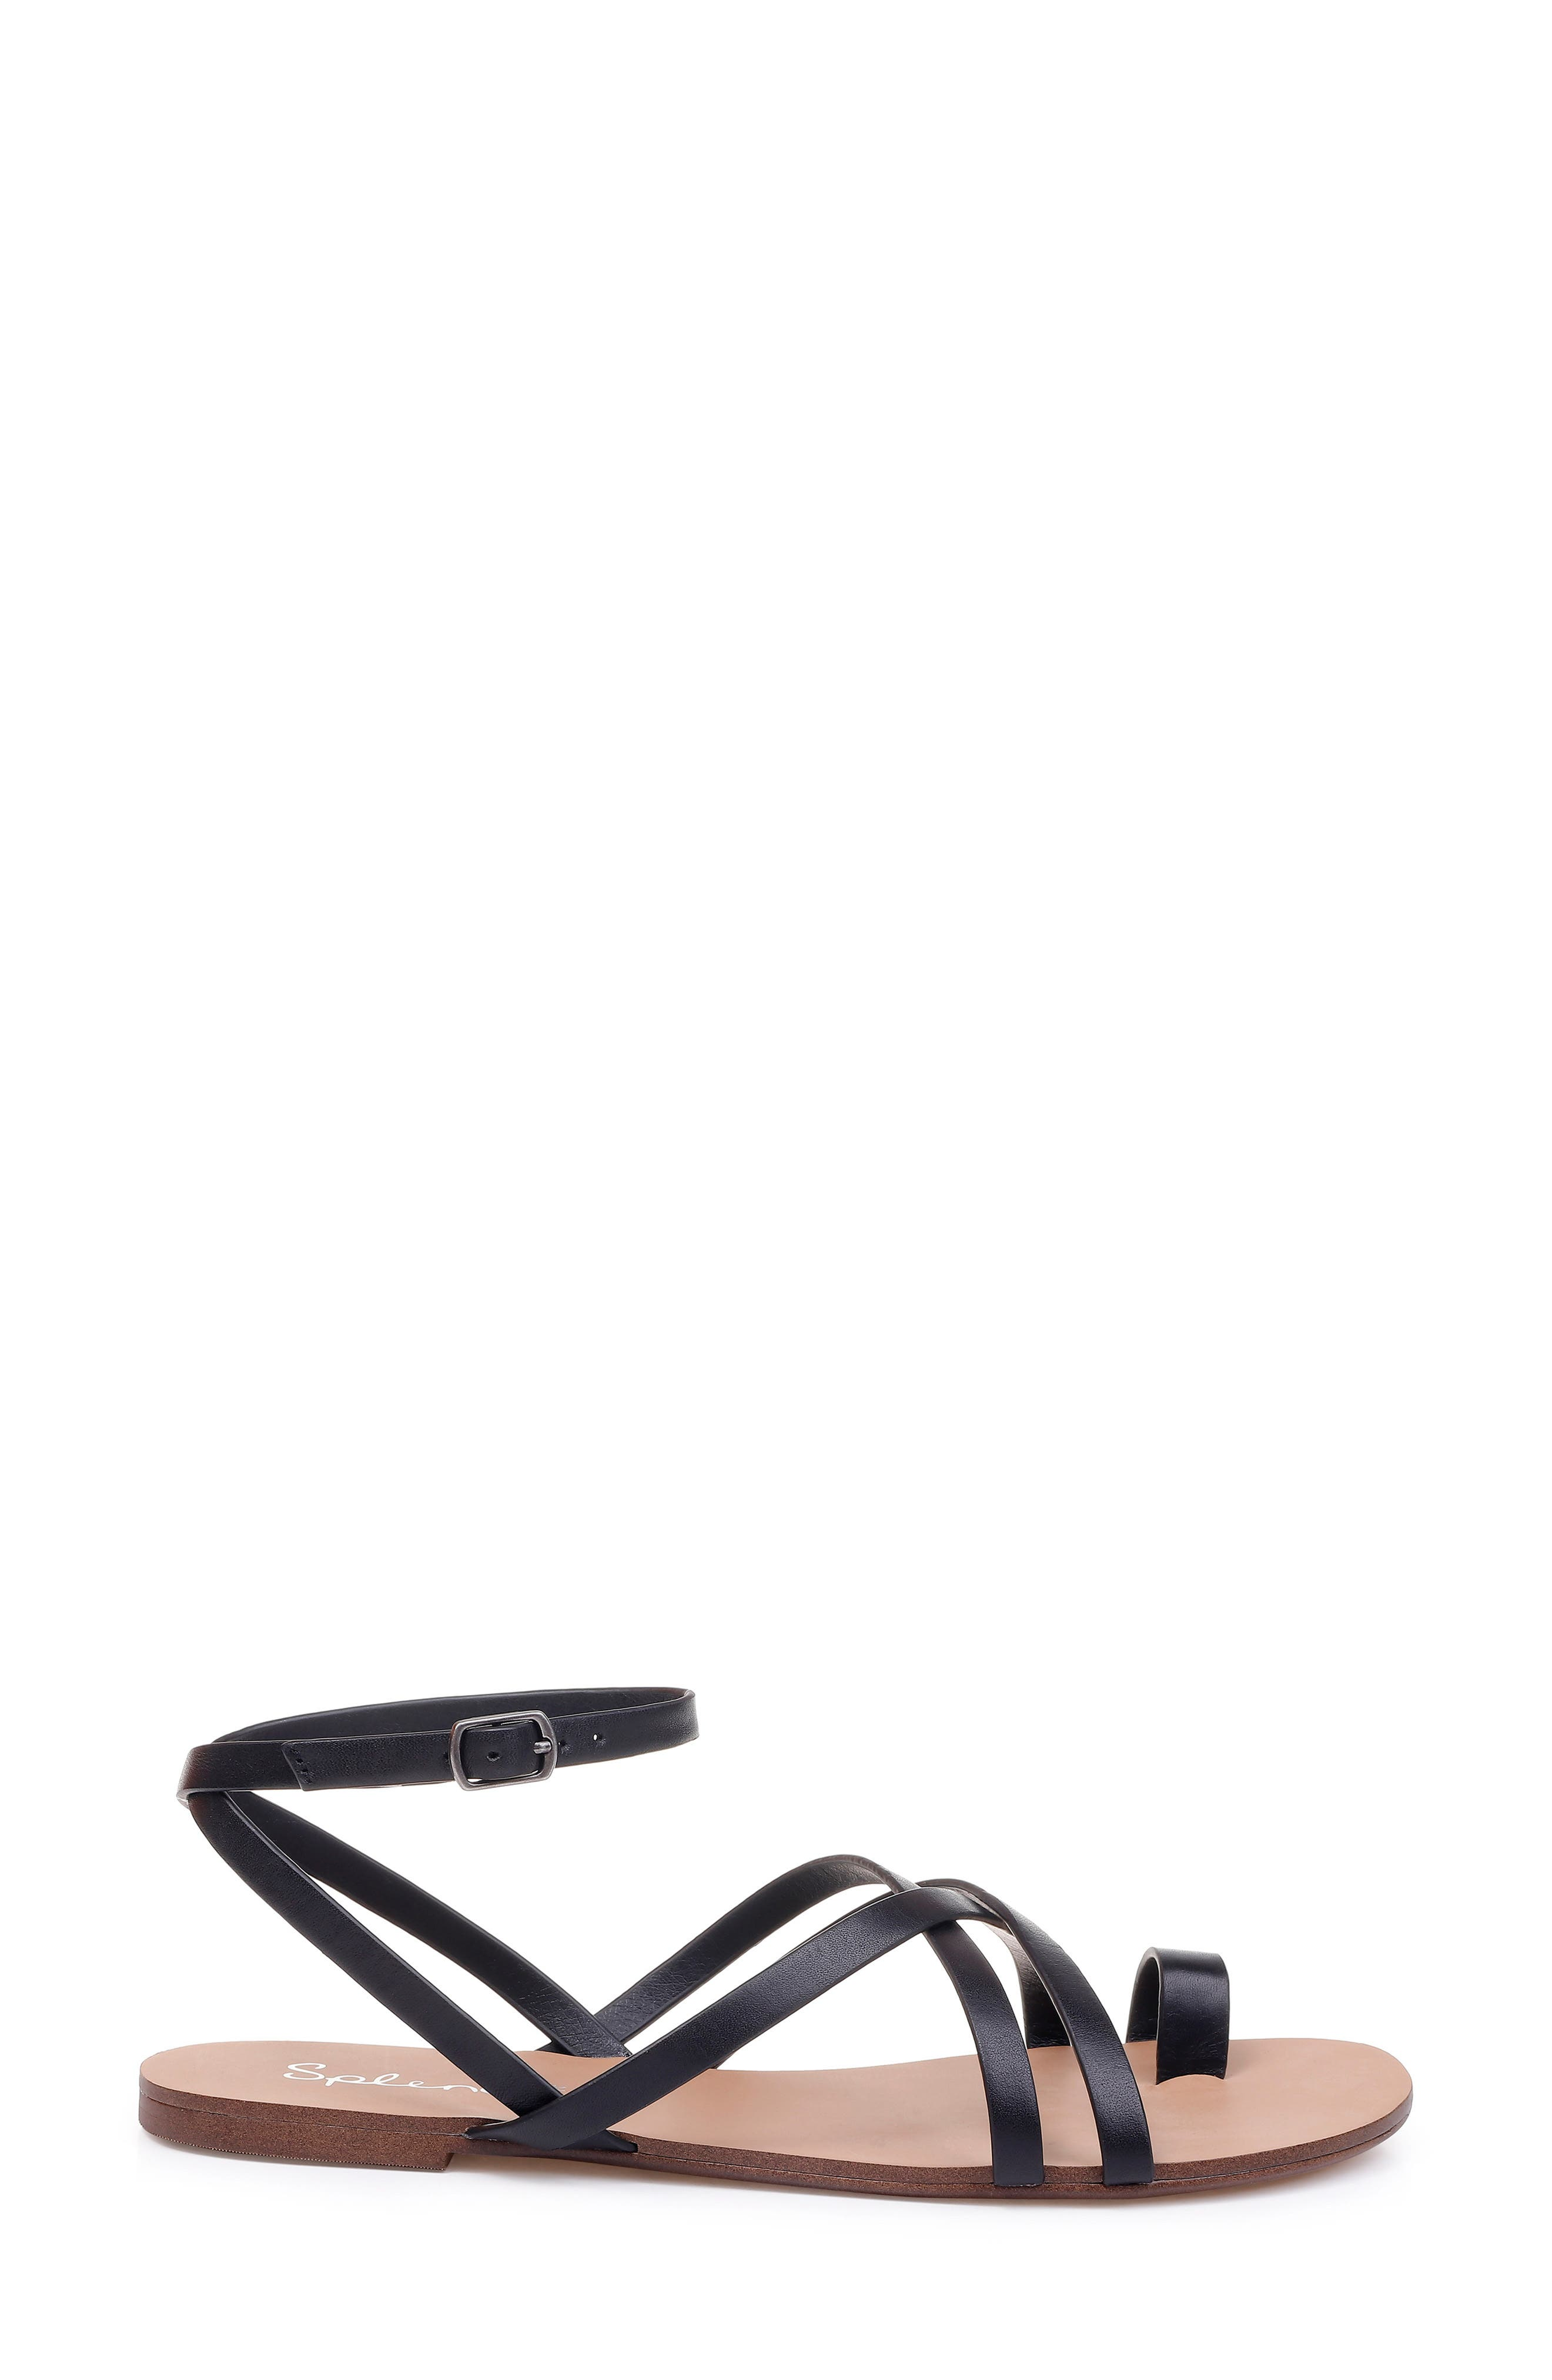 Sully Strappy Toe Loop Sandal,                             Alternate thumbnail 3, color,                             BLACK LEATHER